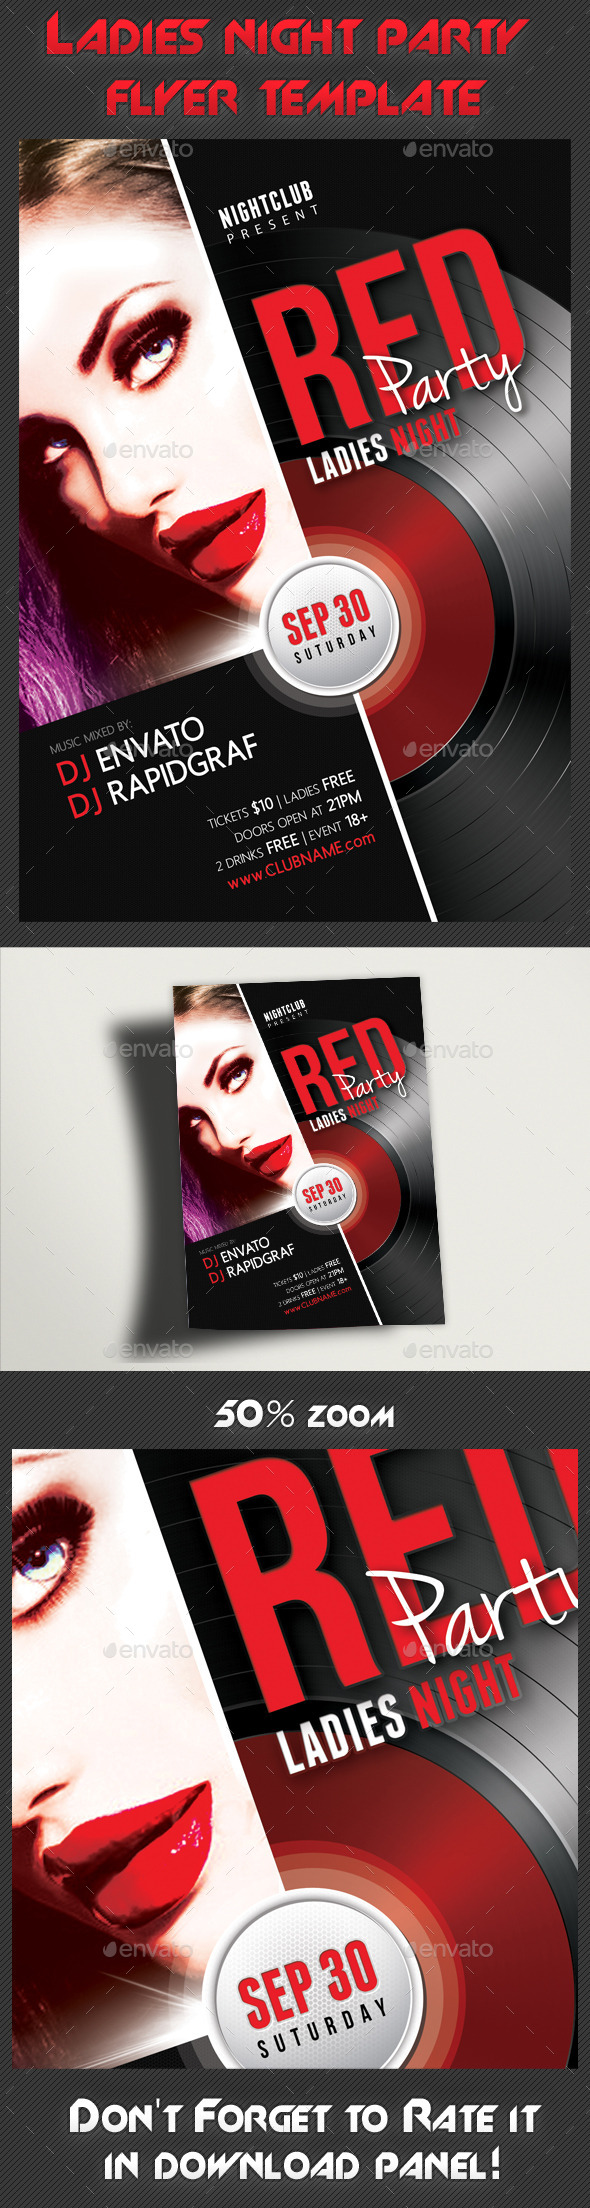 GraphicRiver Ladies Night Party Flyer Template 8947527